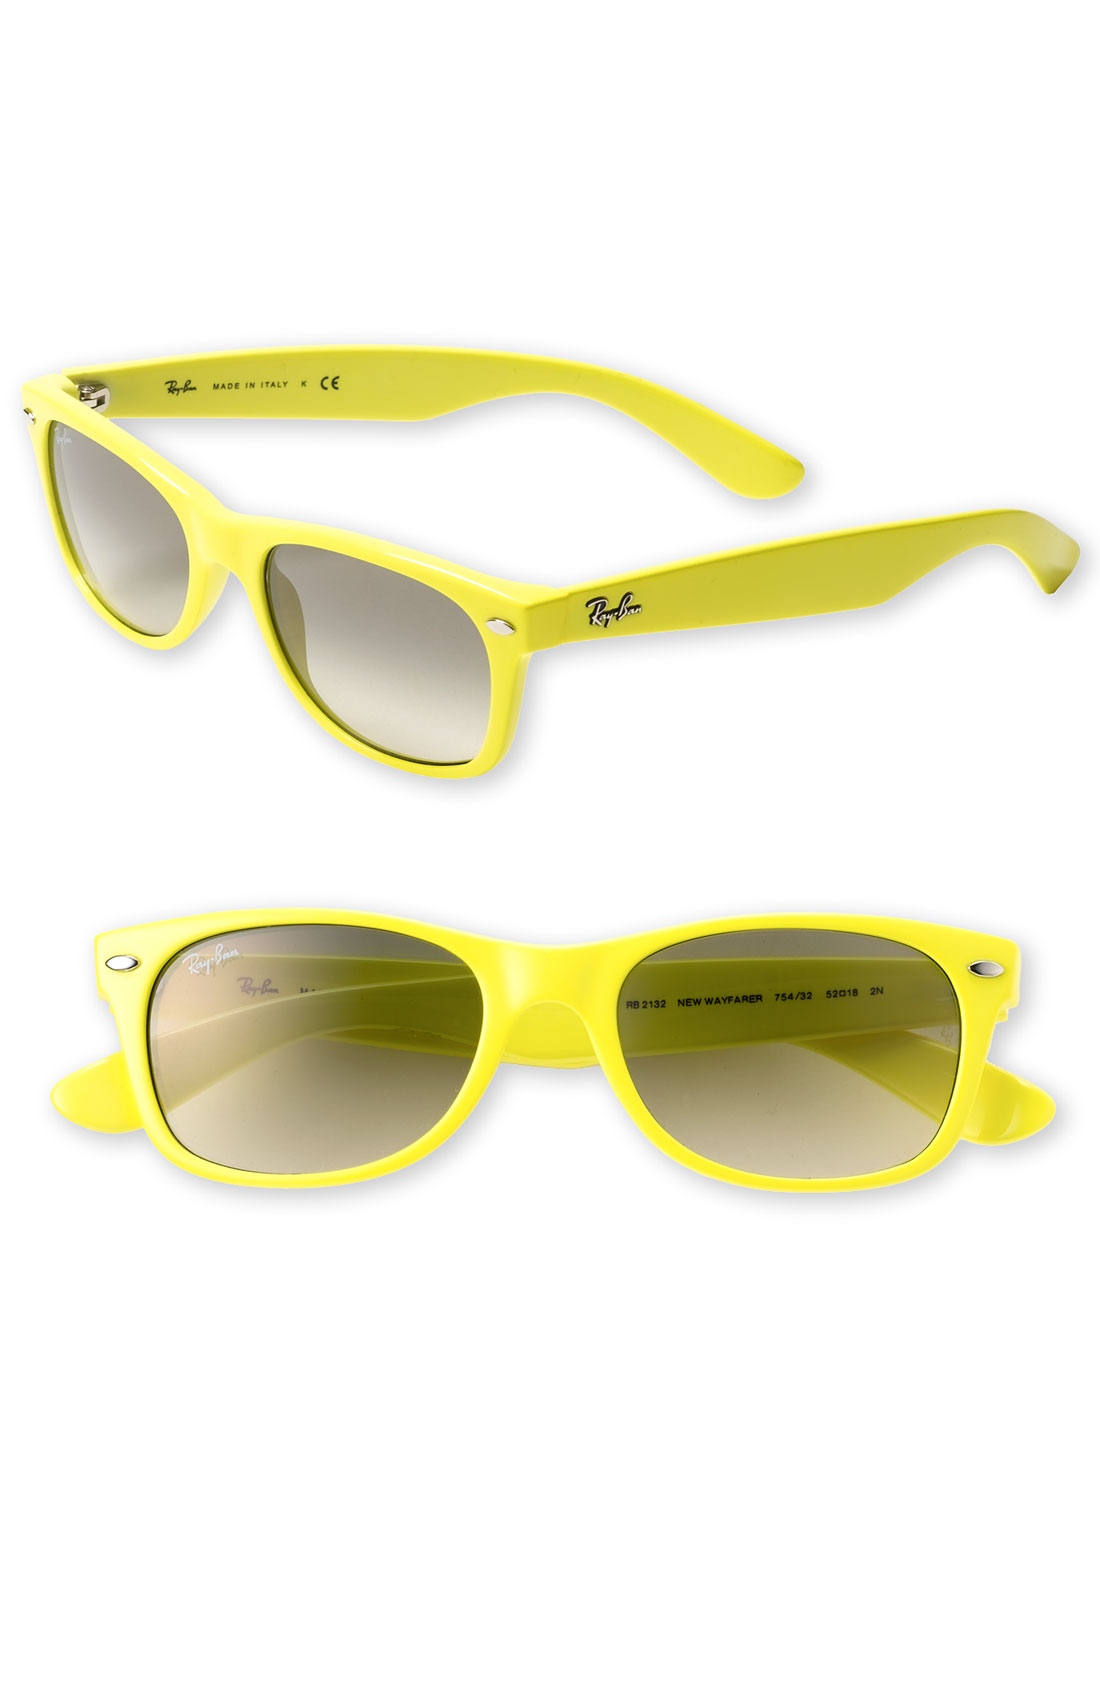 ray ban wayfarer yellow sunglasses  yellow ray ban wayfarer